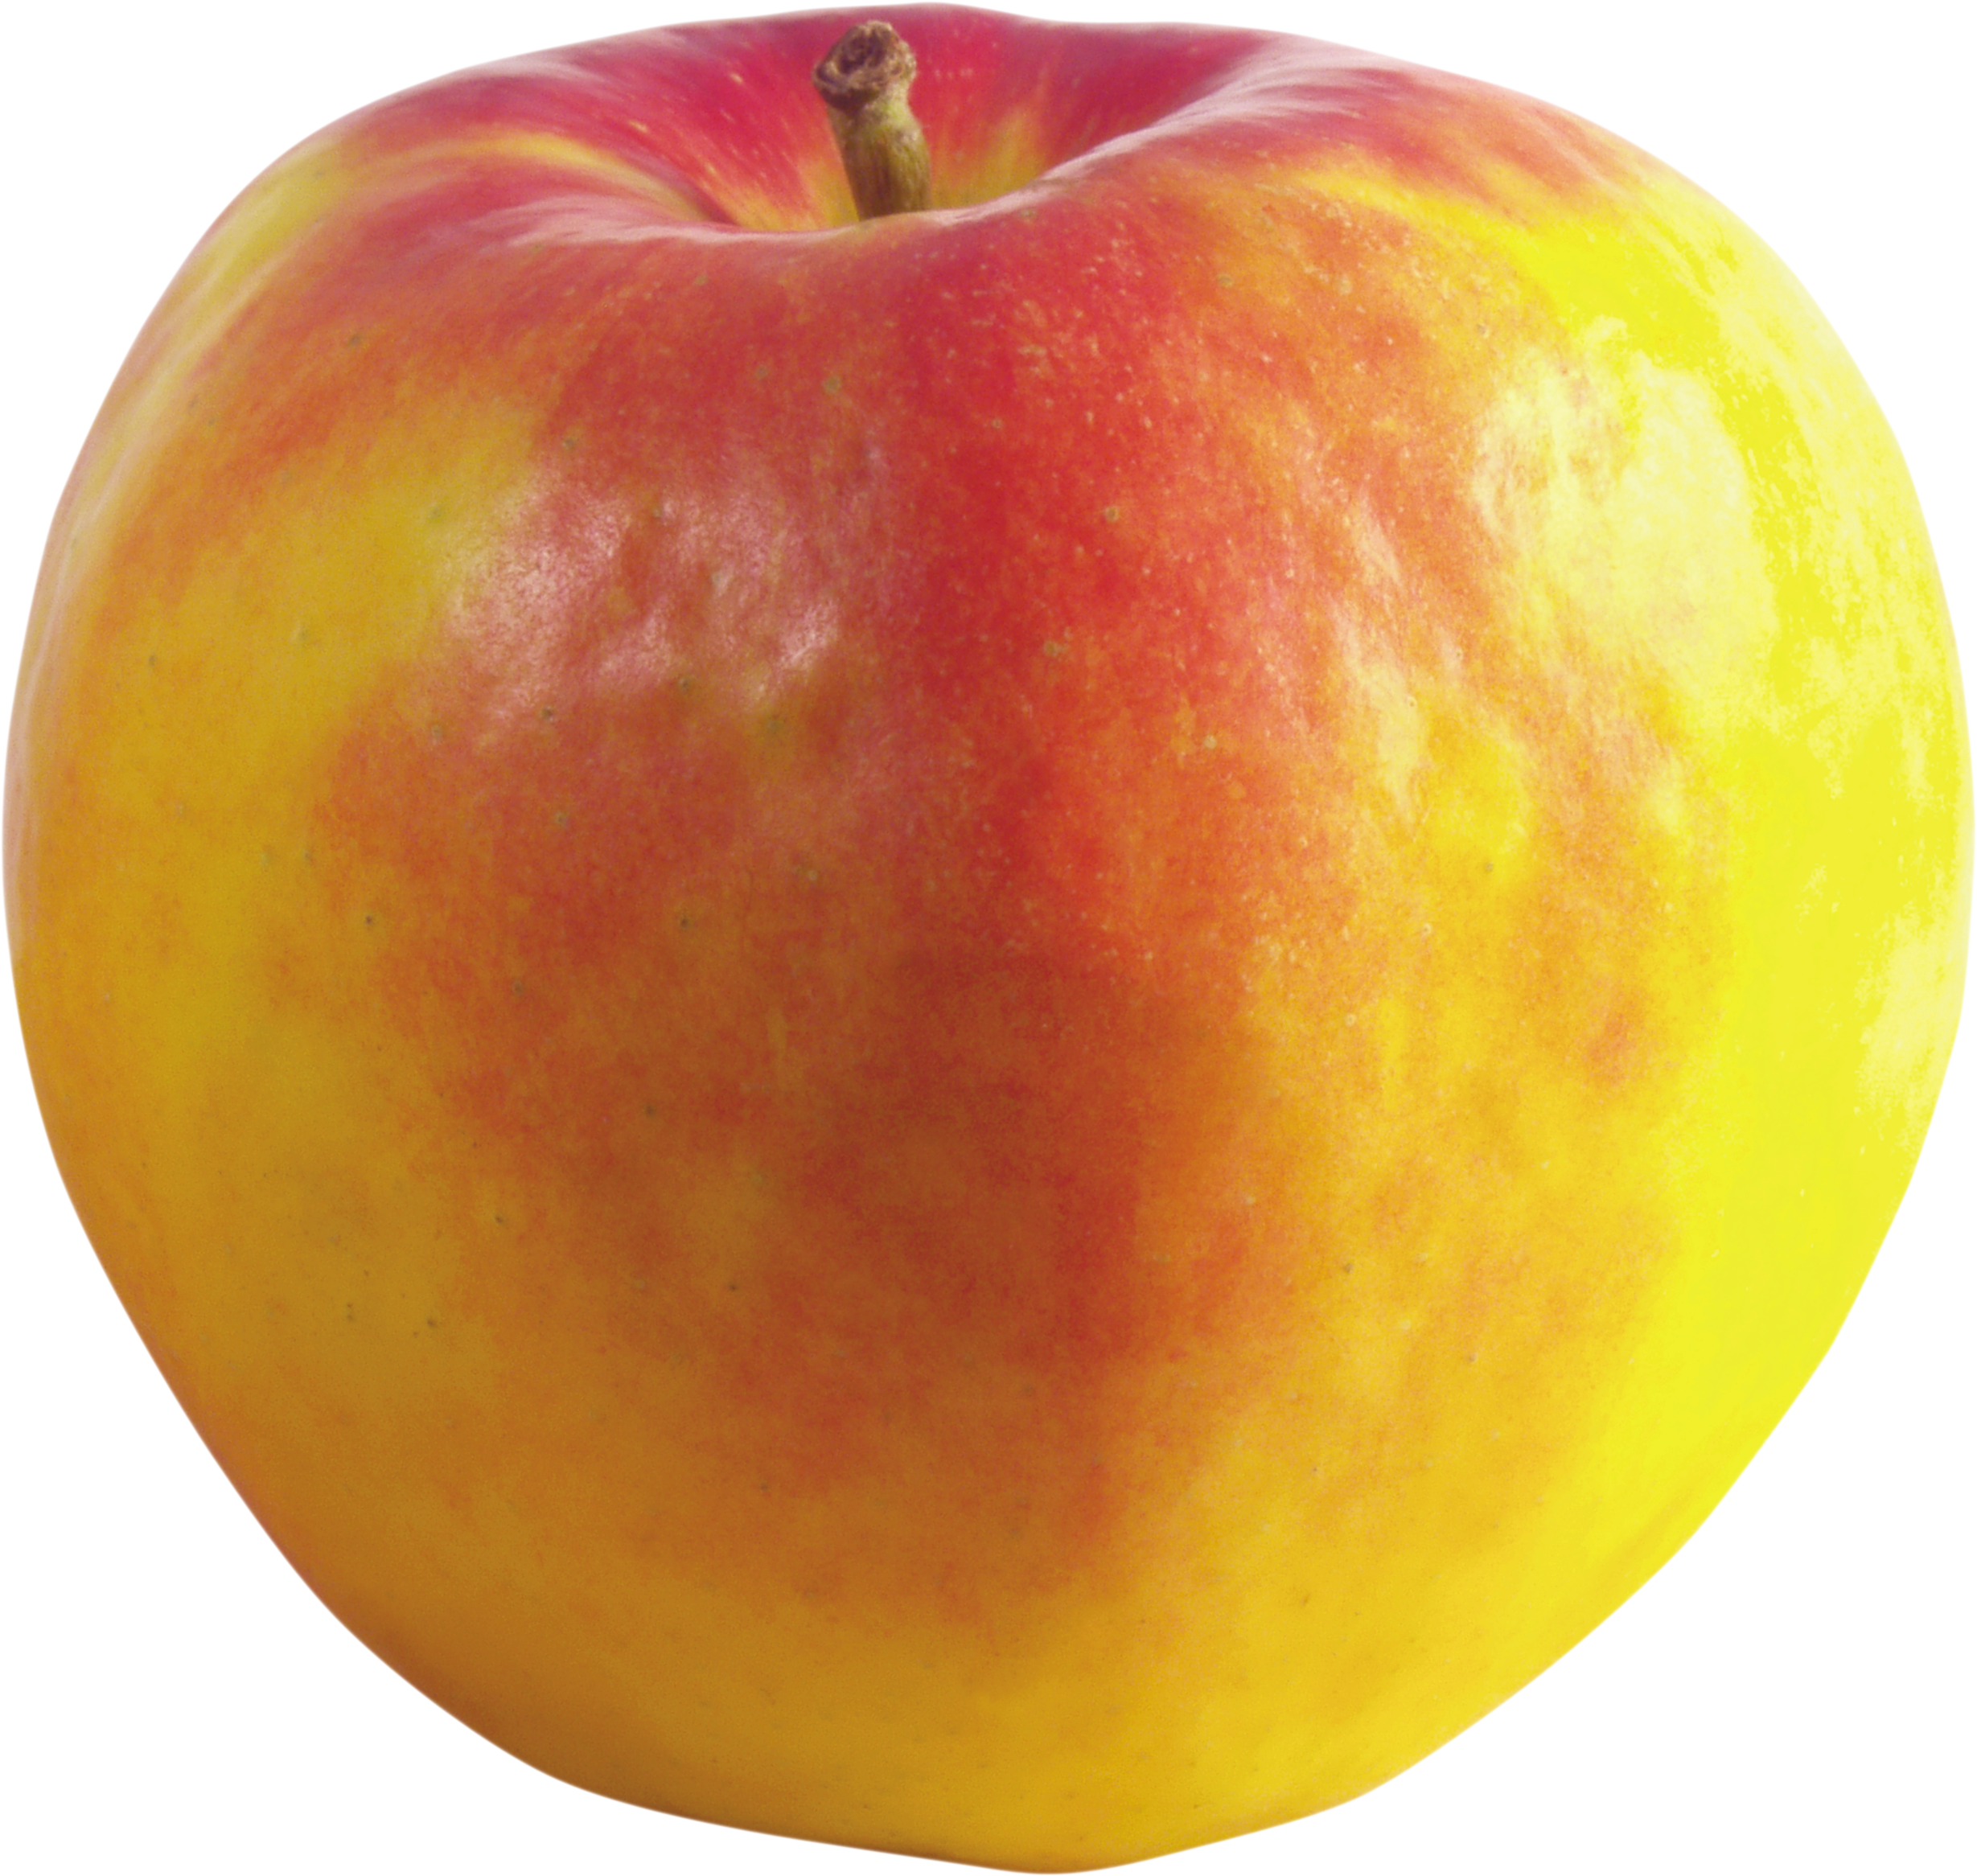 Red and yellow Apple